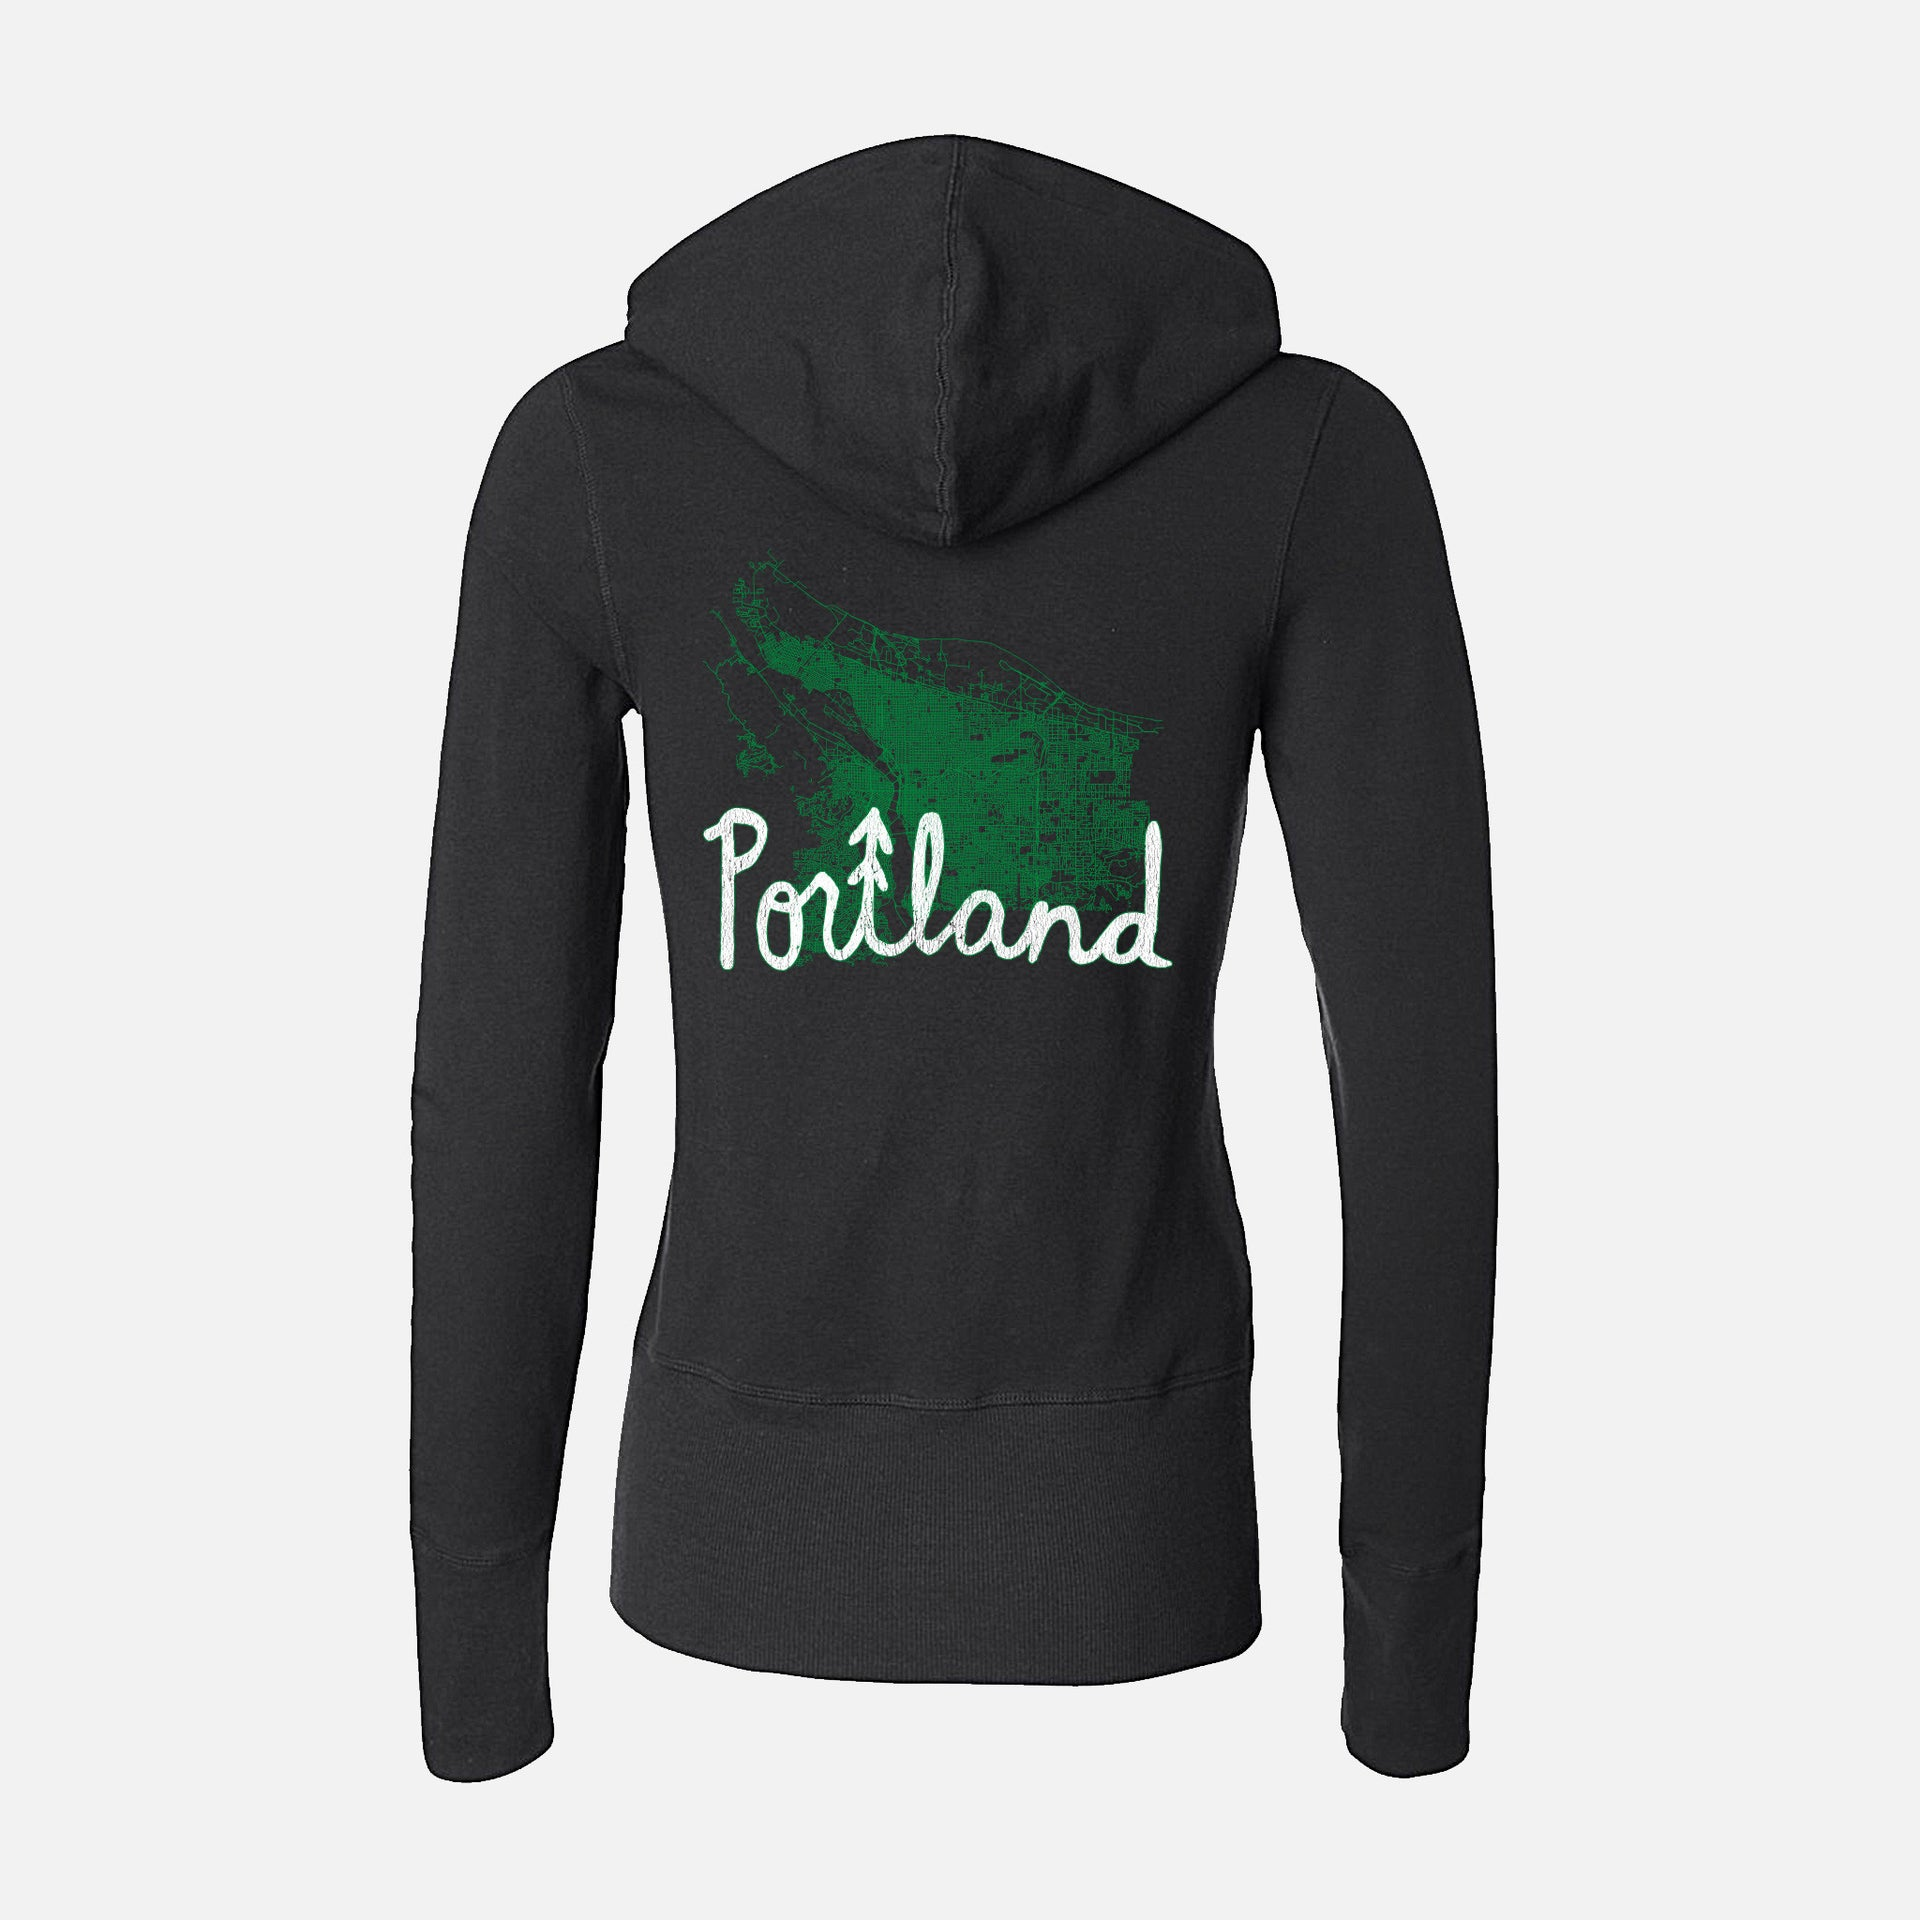 City Limits Zip Hoodie (Women's)